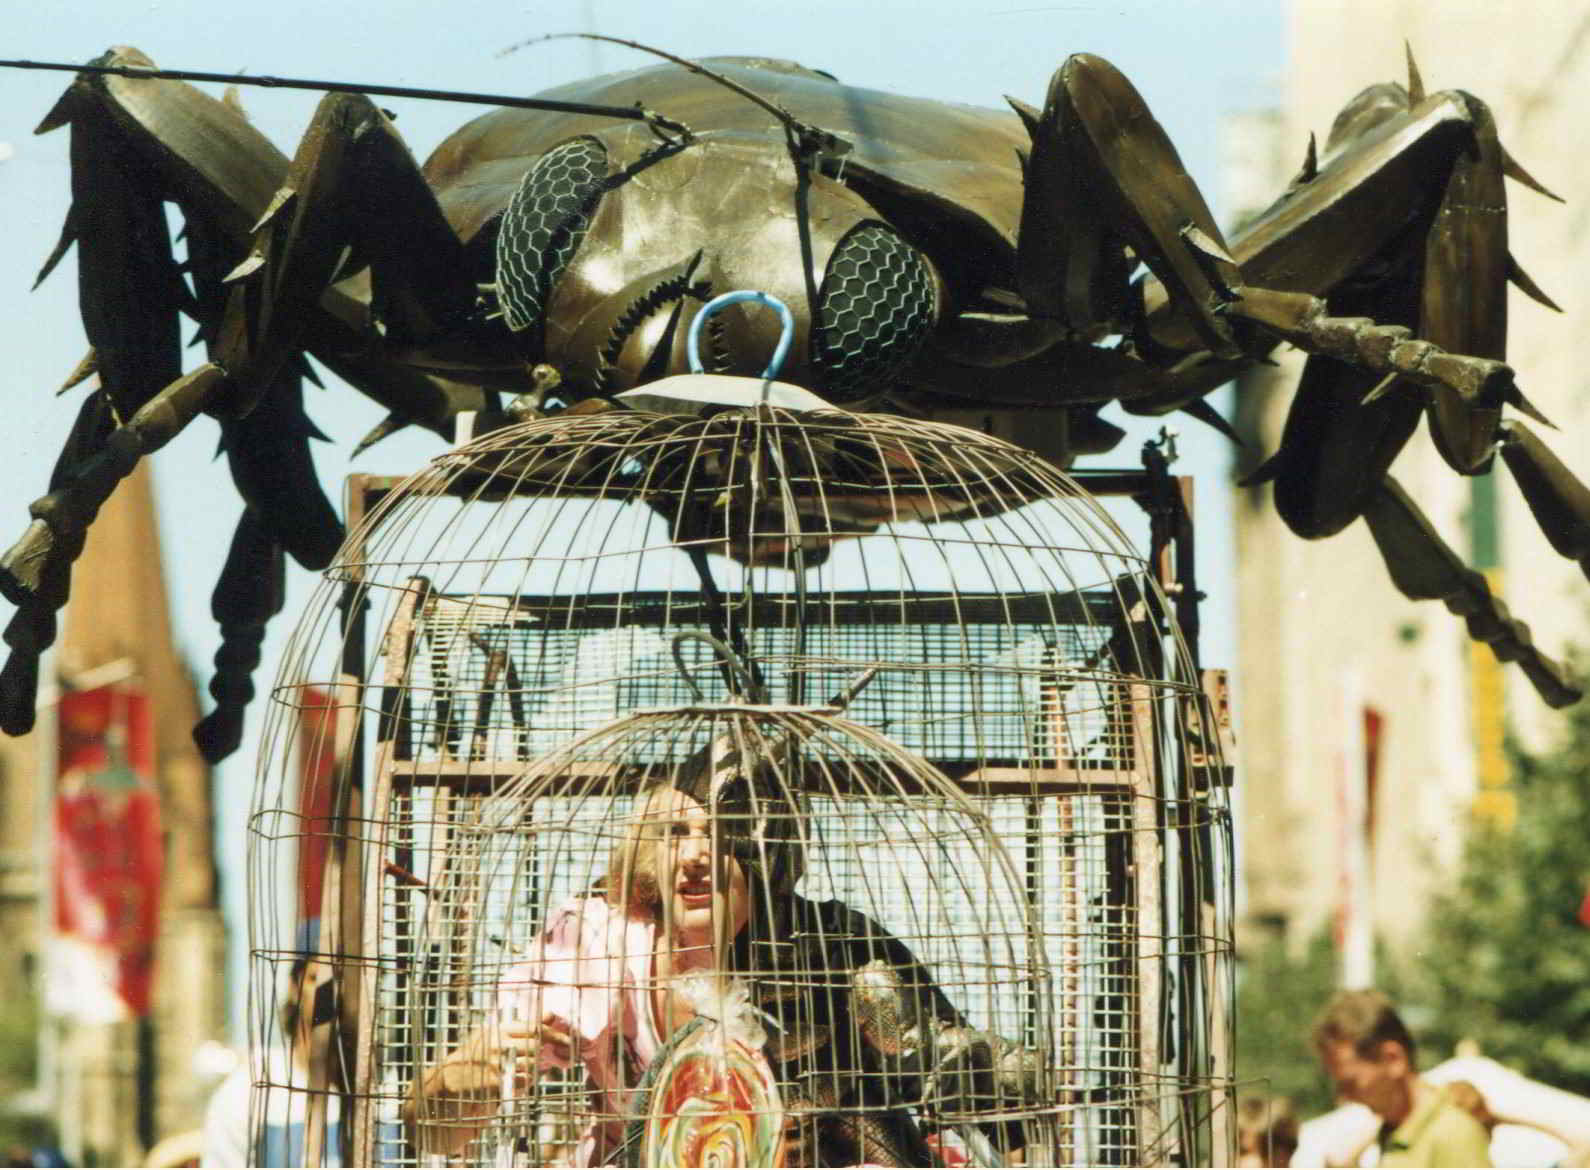 Road Roach parade image large cockroach head on top of cage with woman inside